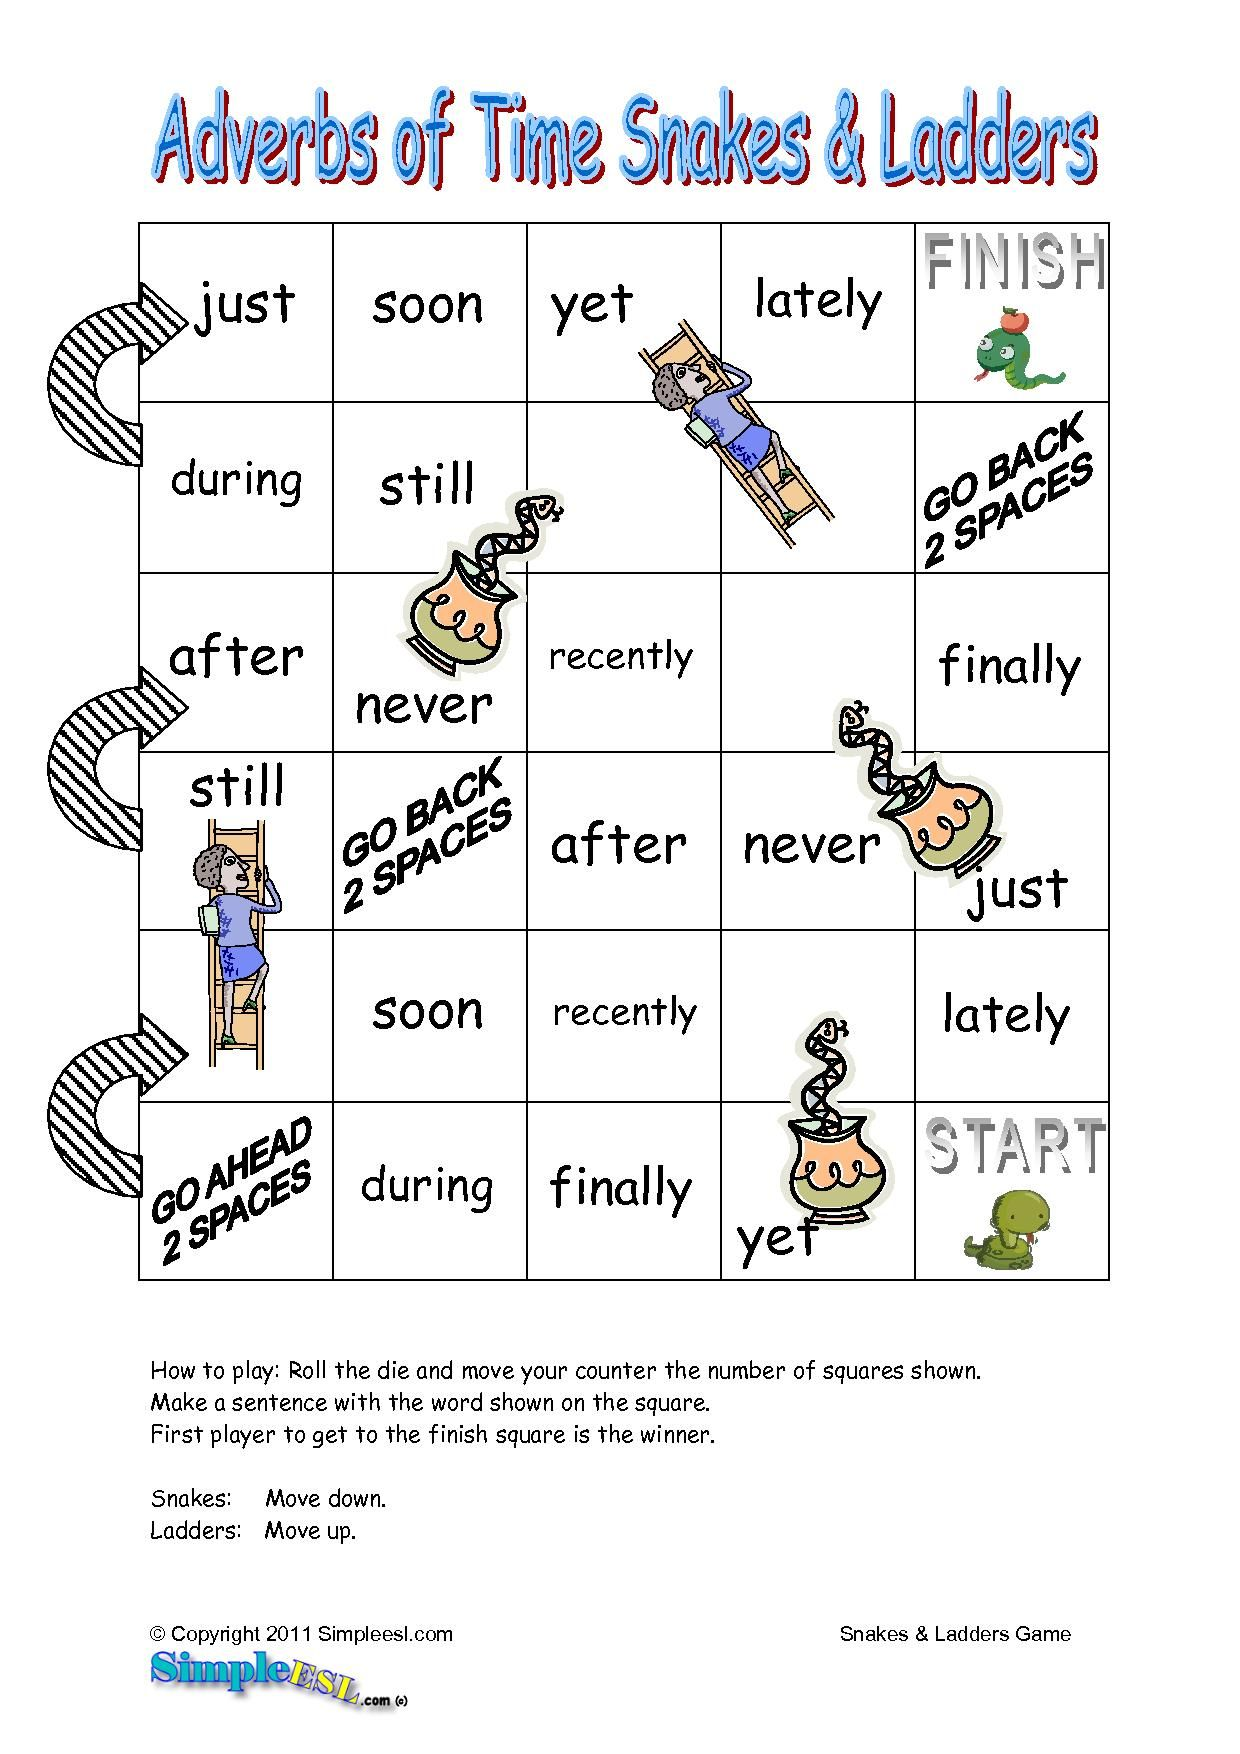 Adverbs of Time Snakes and Ladders – A Chutes-and-Ladders ...